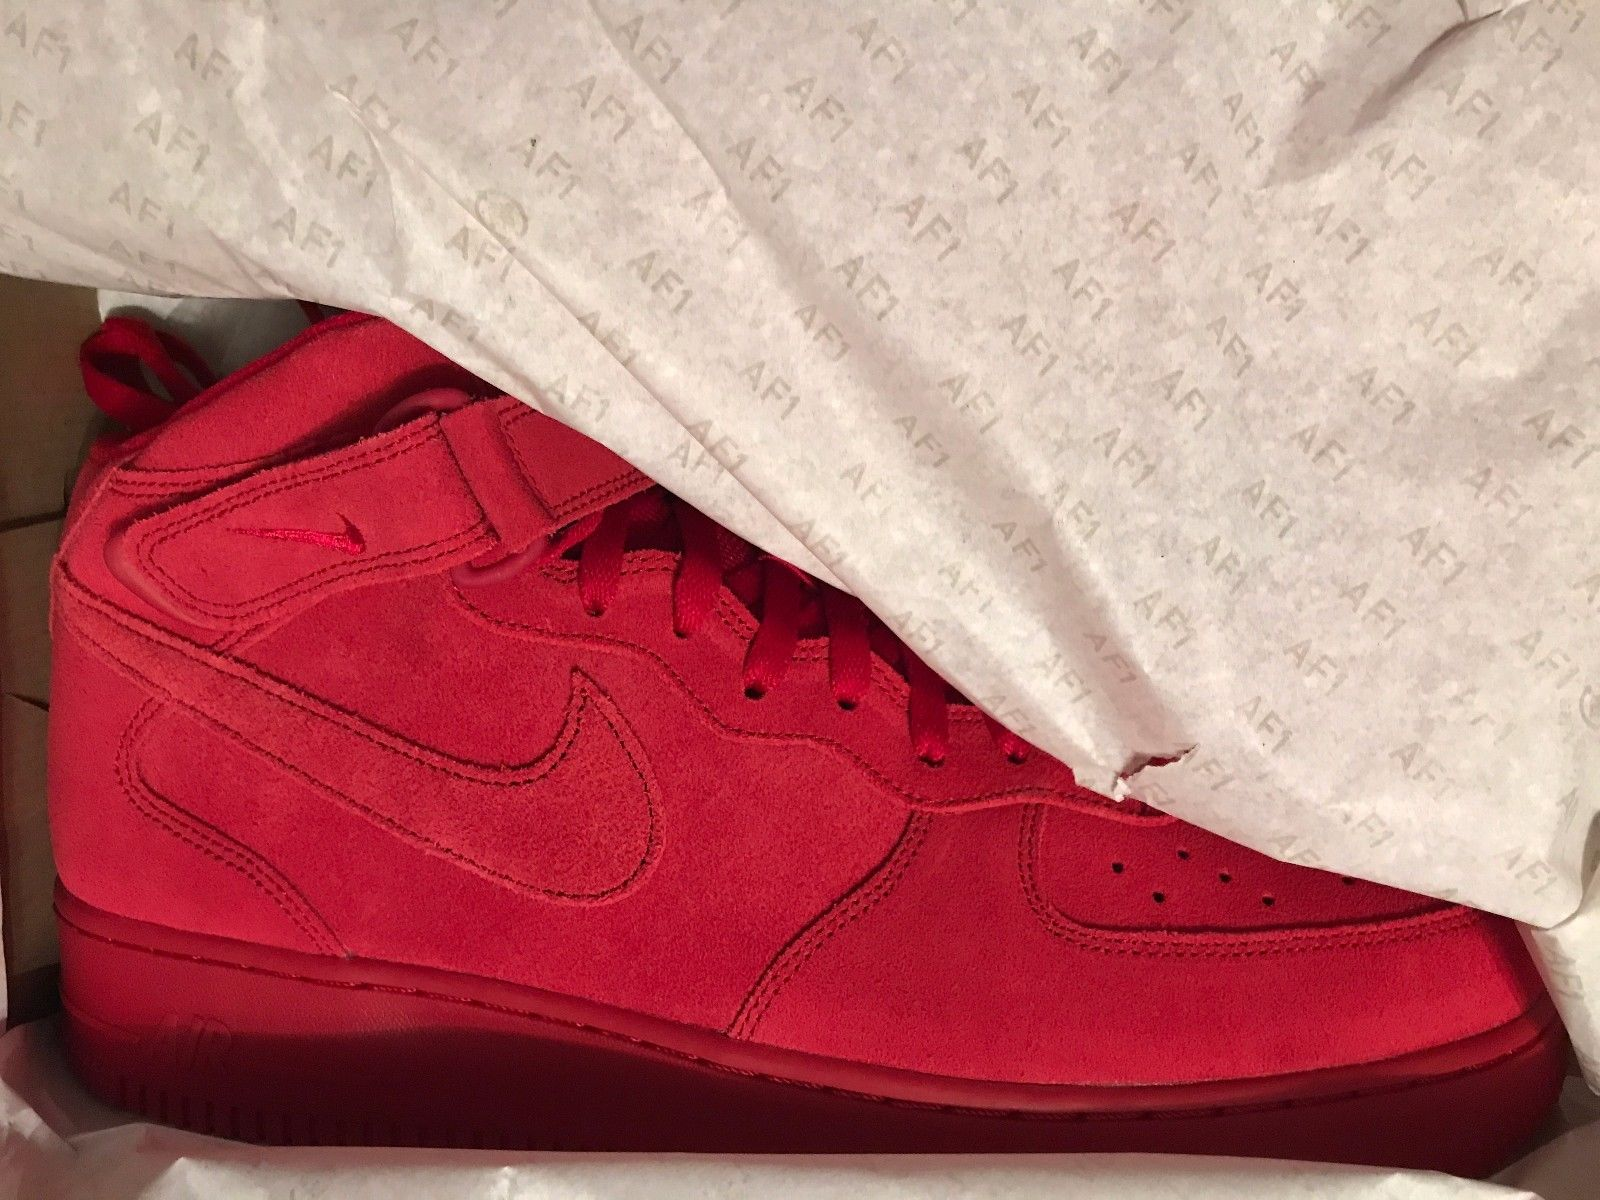 Image of NIKE AIR FORCE 1 MID - Triple Red - SIZE 13 - NEW